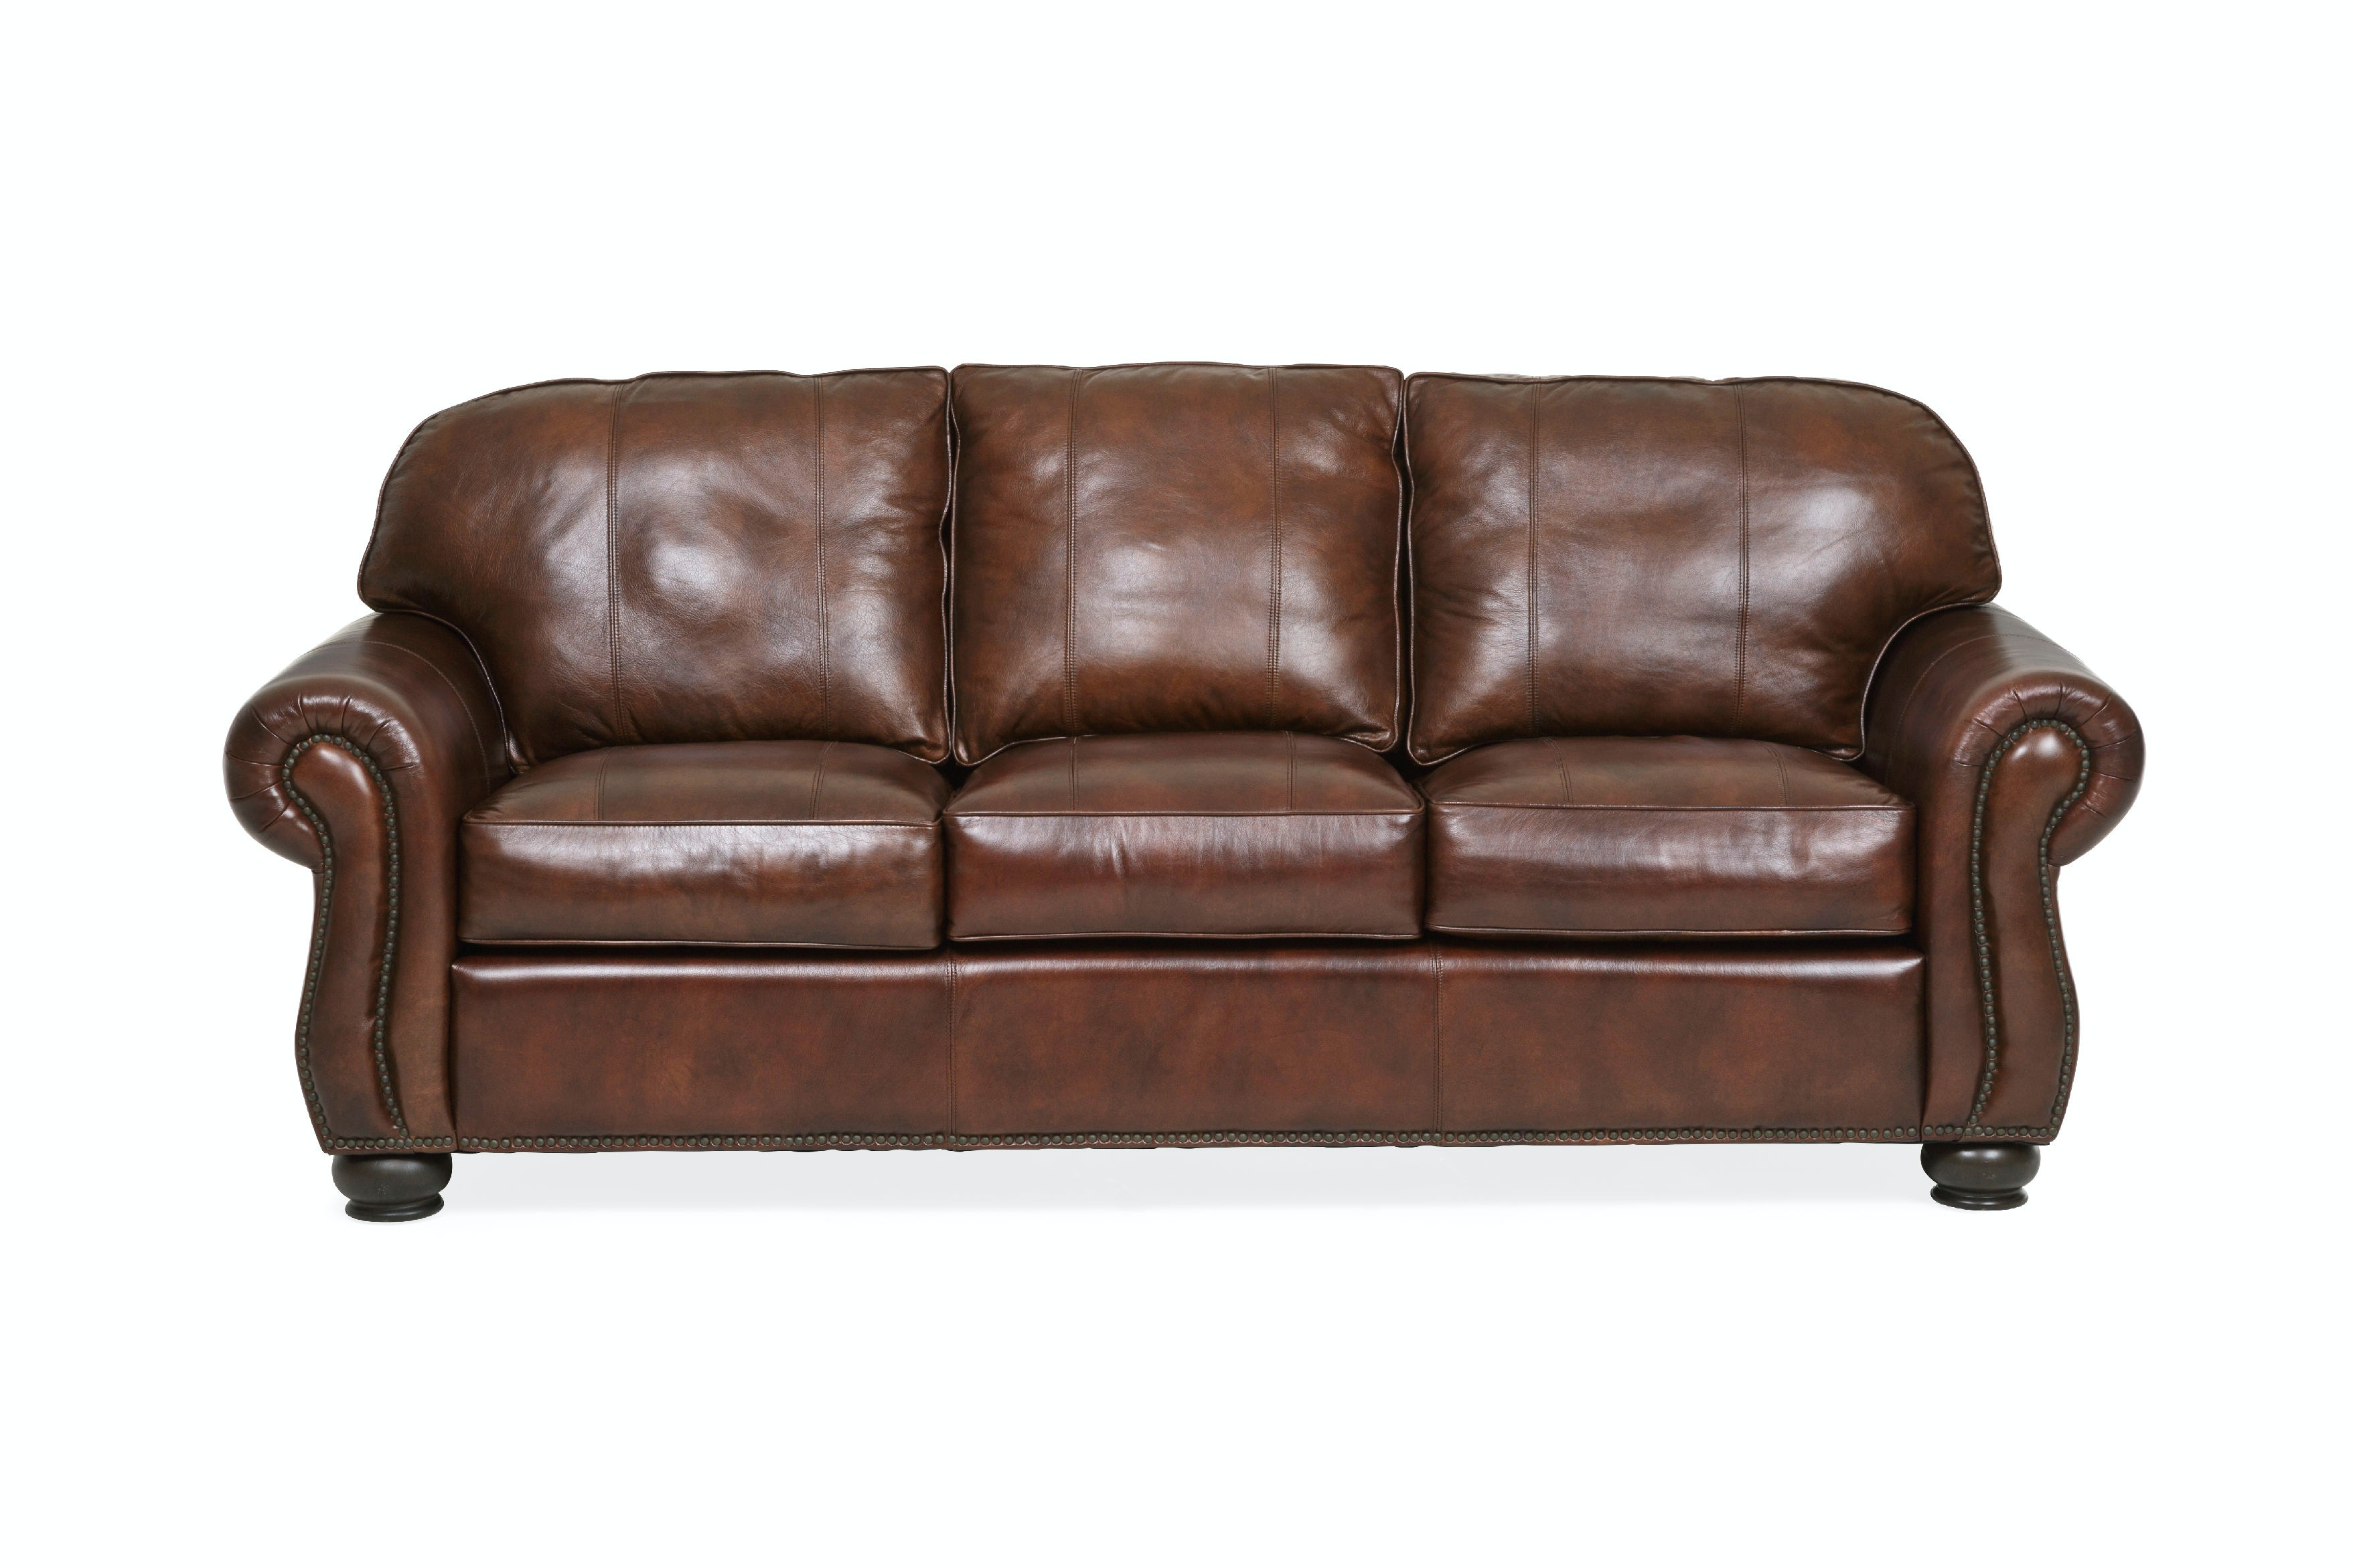 Benson Leather Sofa ST:405556